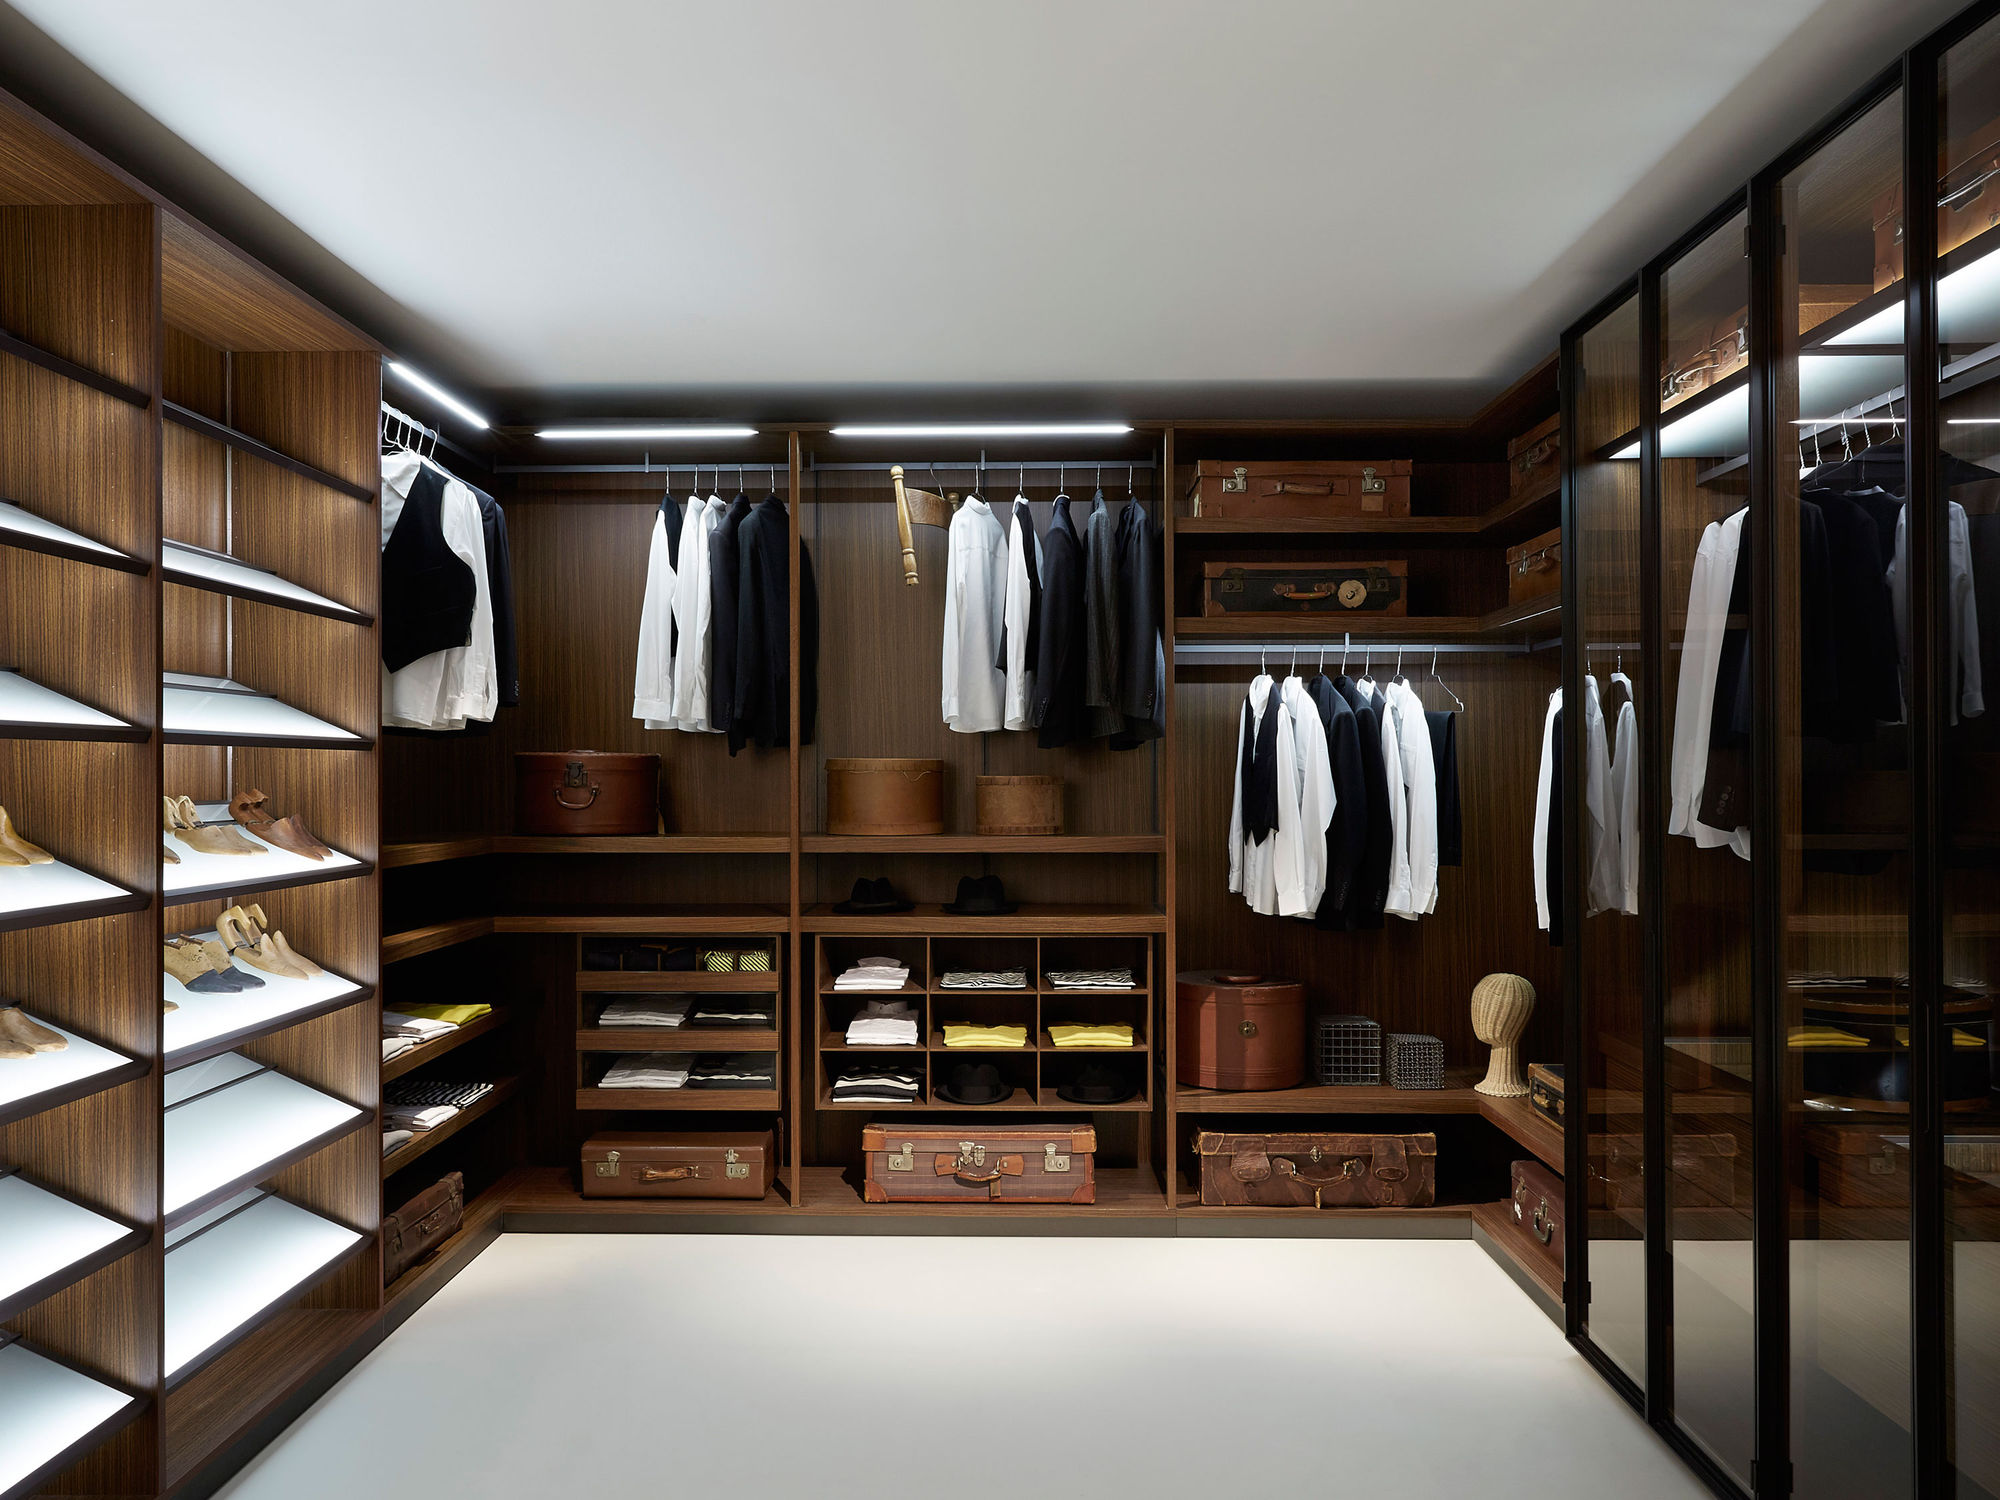 bedroom-laundry-room-furniture-wooden-walk-in-wardrobes-closet-piero-lissoni-with-excellent-luxury-in-modern-house-design-walk-in-closet-with-traditional-and-modern-interior-design-for-small-house